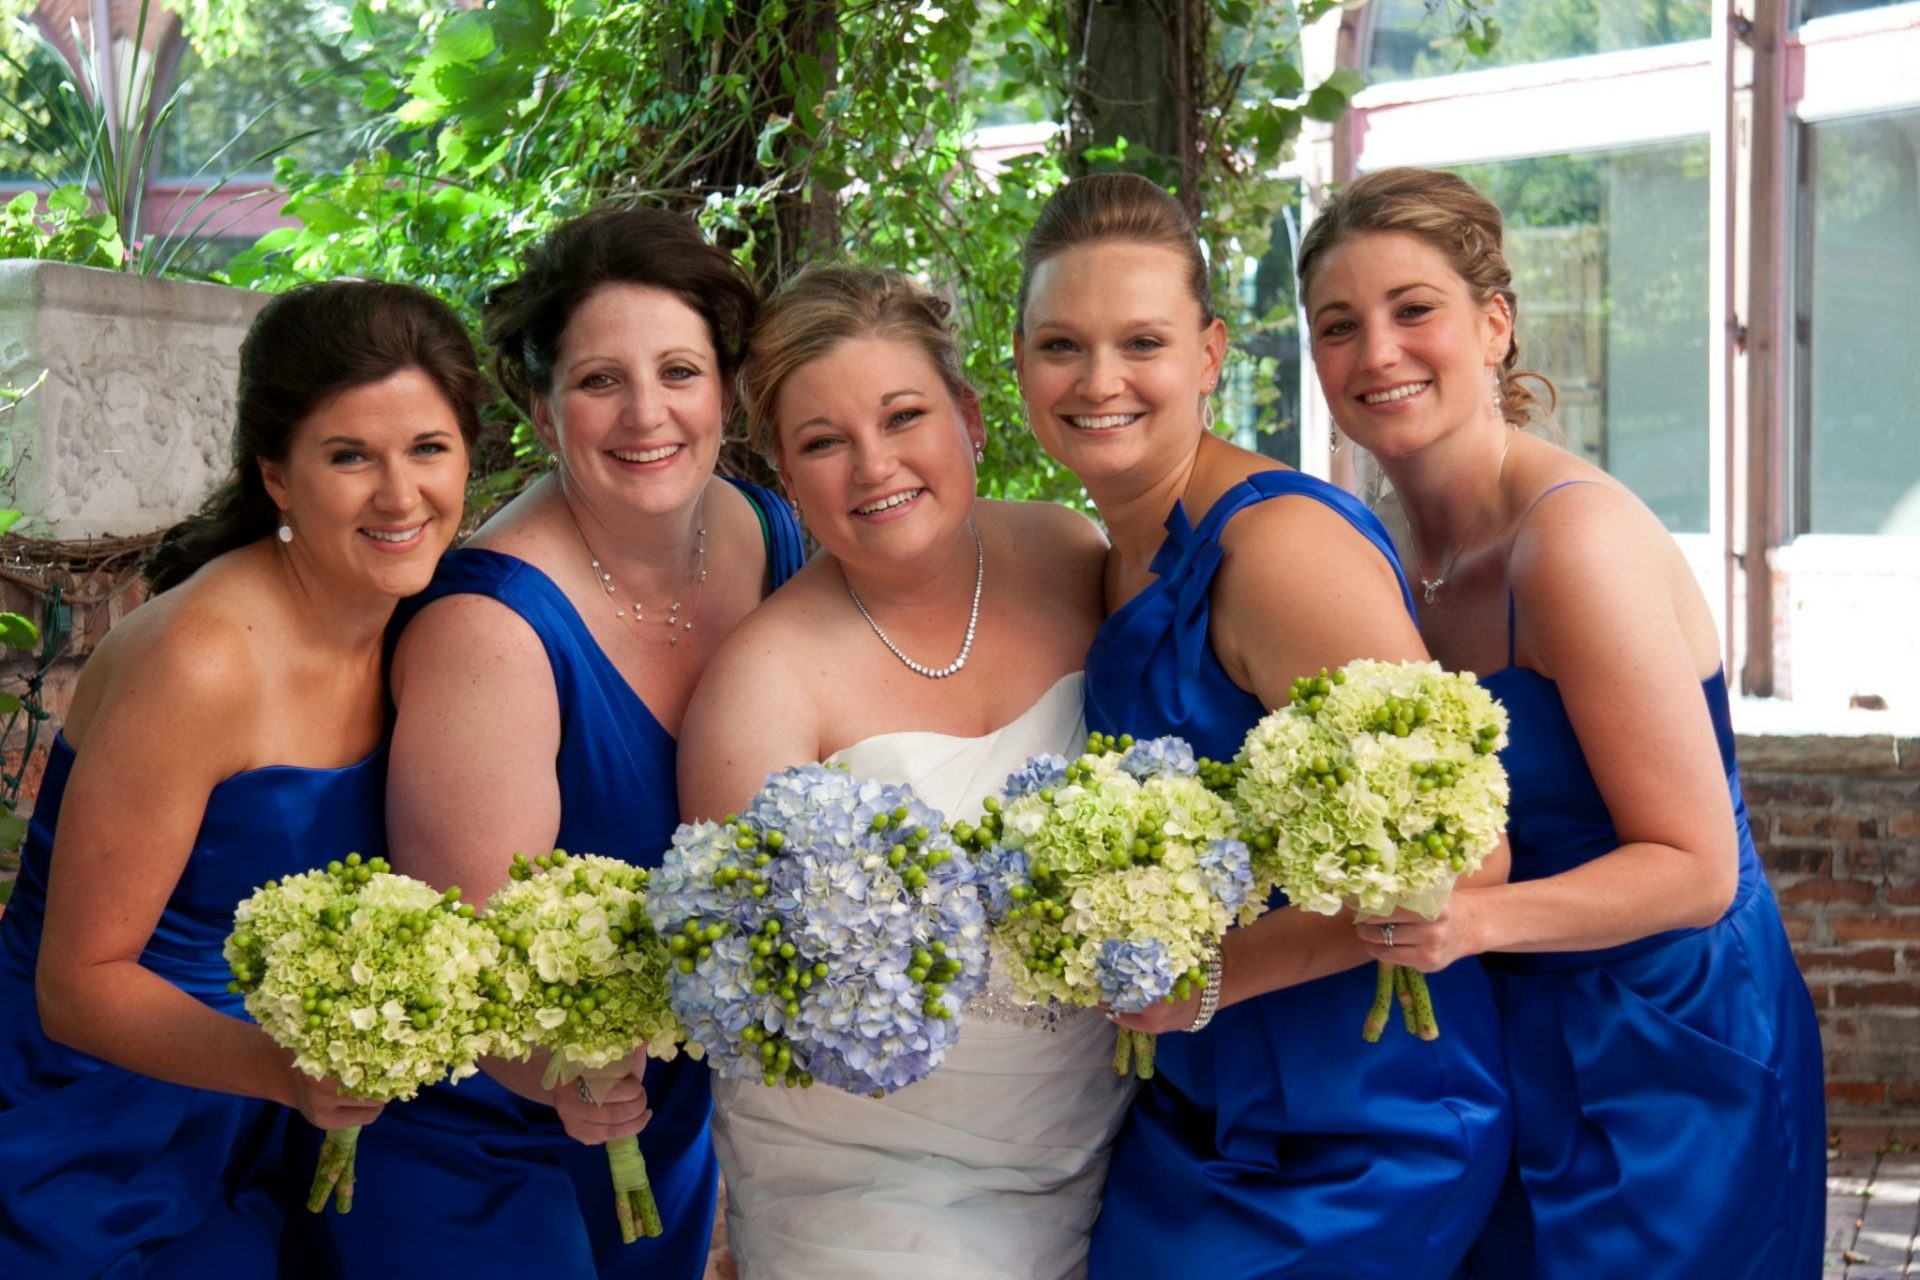 Blue and green wedding bouquets of hydrangea and hypericum berries.